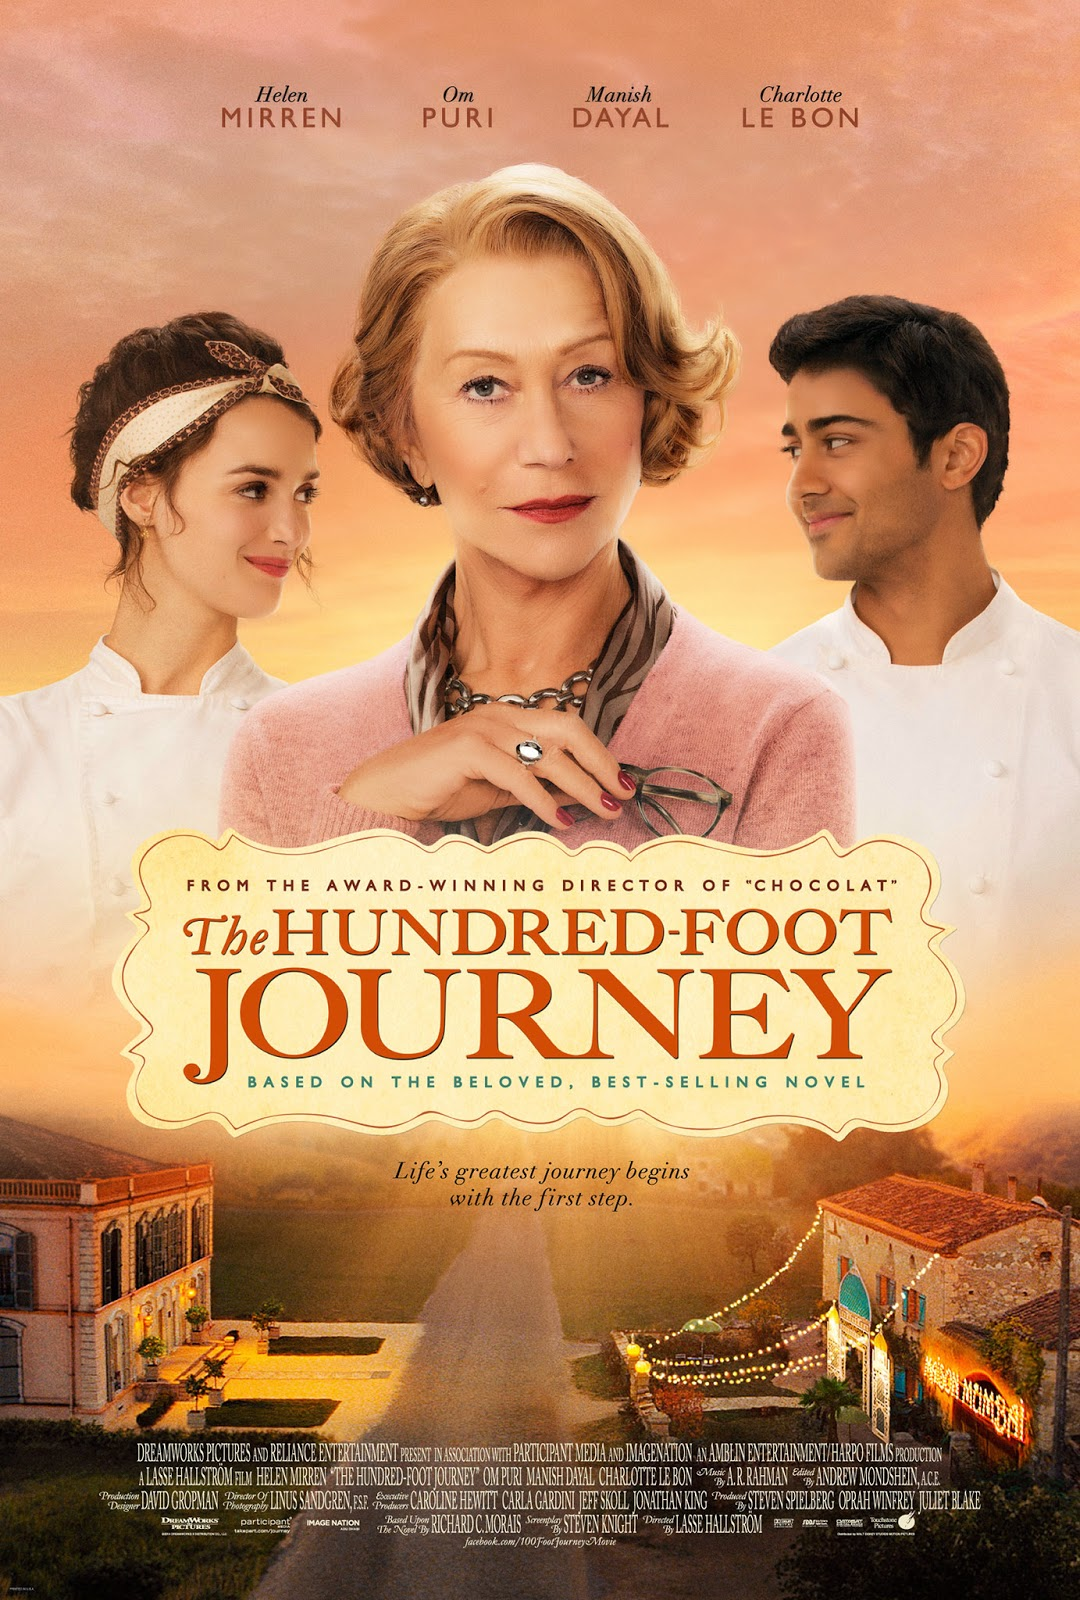 #100FootJourney Dreamworks